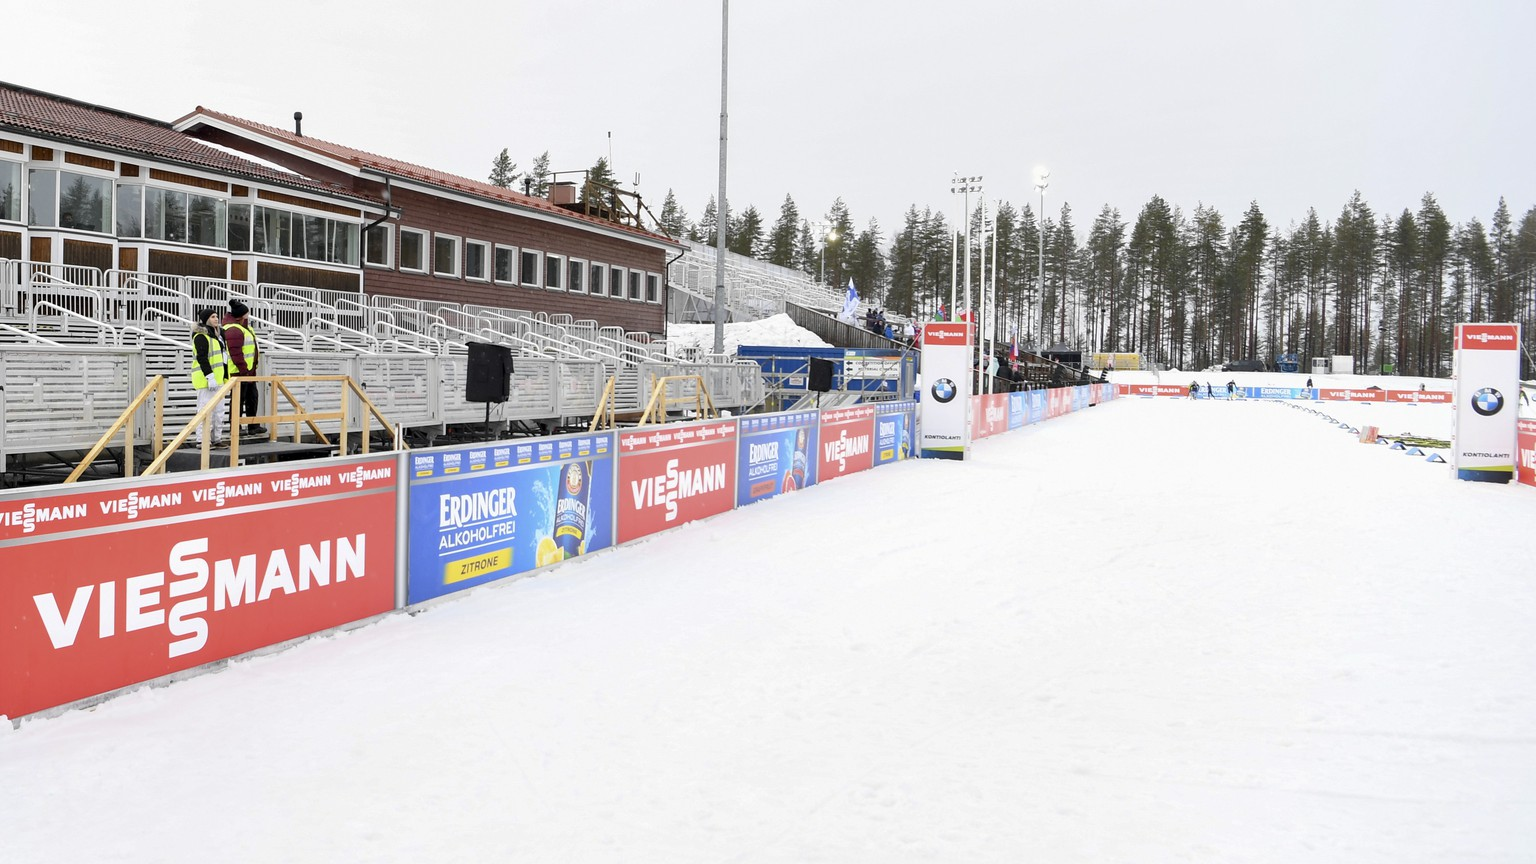 epa08289293 Empty grandstand in Kontiolahti before the men's 10 km Sprint competition of the IBU Biathlon World Cup in Kontiolahti, Finland, 12 March 2020. The International Biathlon Union (IBU) has taken note of the recommendation by the Finnish Government and health authorities to cancel all events with more than 500 participants. The IBU and the Kontiolahti Organising Committee and Finnish Biathlon Federation together with the authorities of the municipality of Kontiolahti and the City of Joensuu will fully implement the recommendations made by the Finnish government this afternoon and close the event for the public from today, 12 March 2020. Moreover, the number of people involved at the venue at the same time will be reduced to below 500 to guarantee that the competitions can go ahead as planned until 15 March. The competition schedule for Kontiolahti will not change.  EPA/KIMMO BRANDT